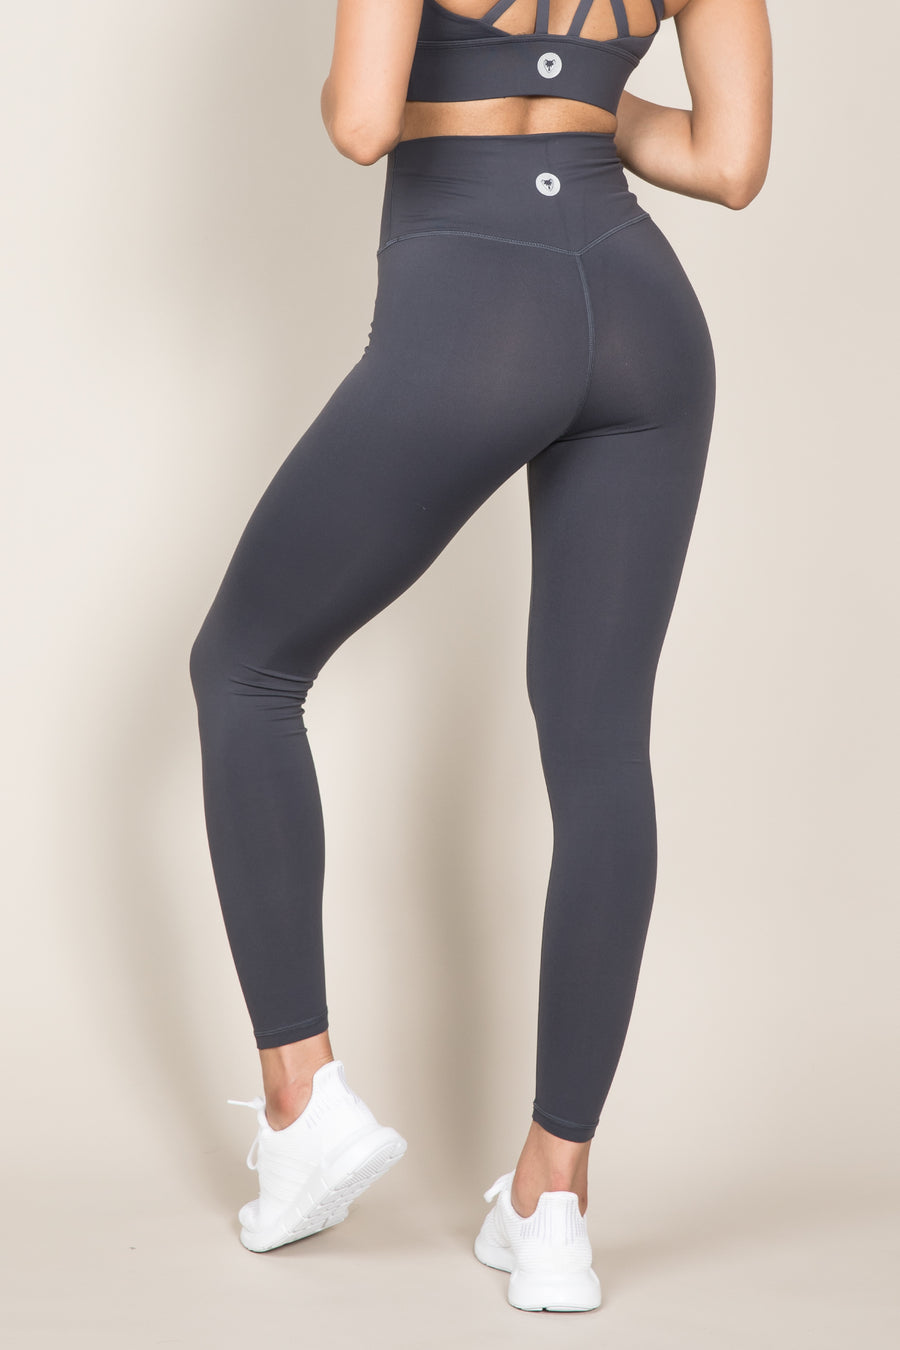 Sensation Leggings - Steel Grey